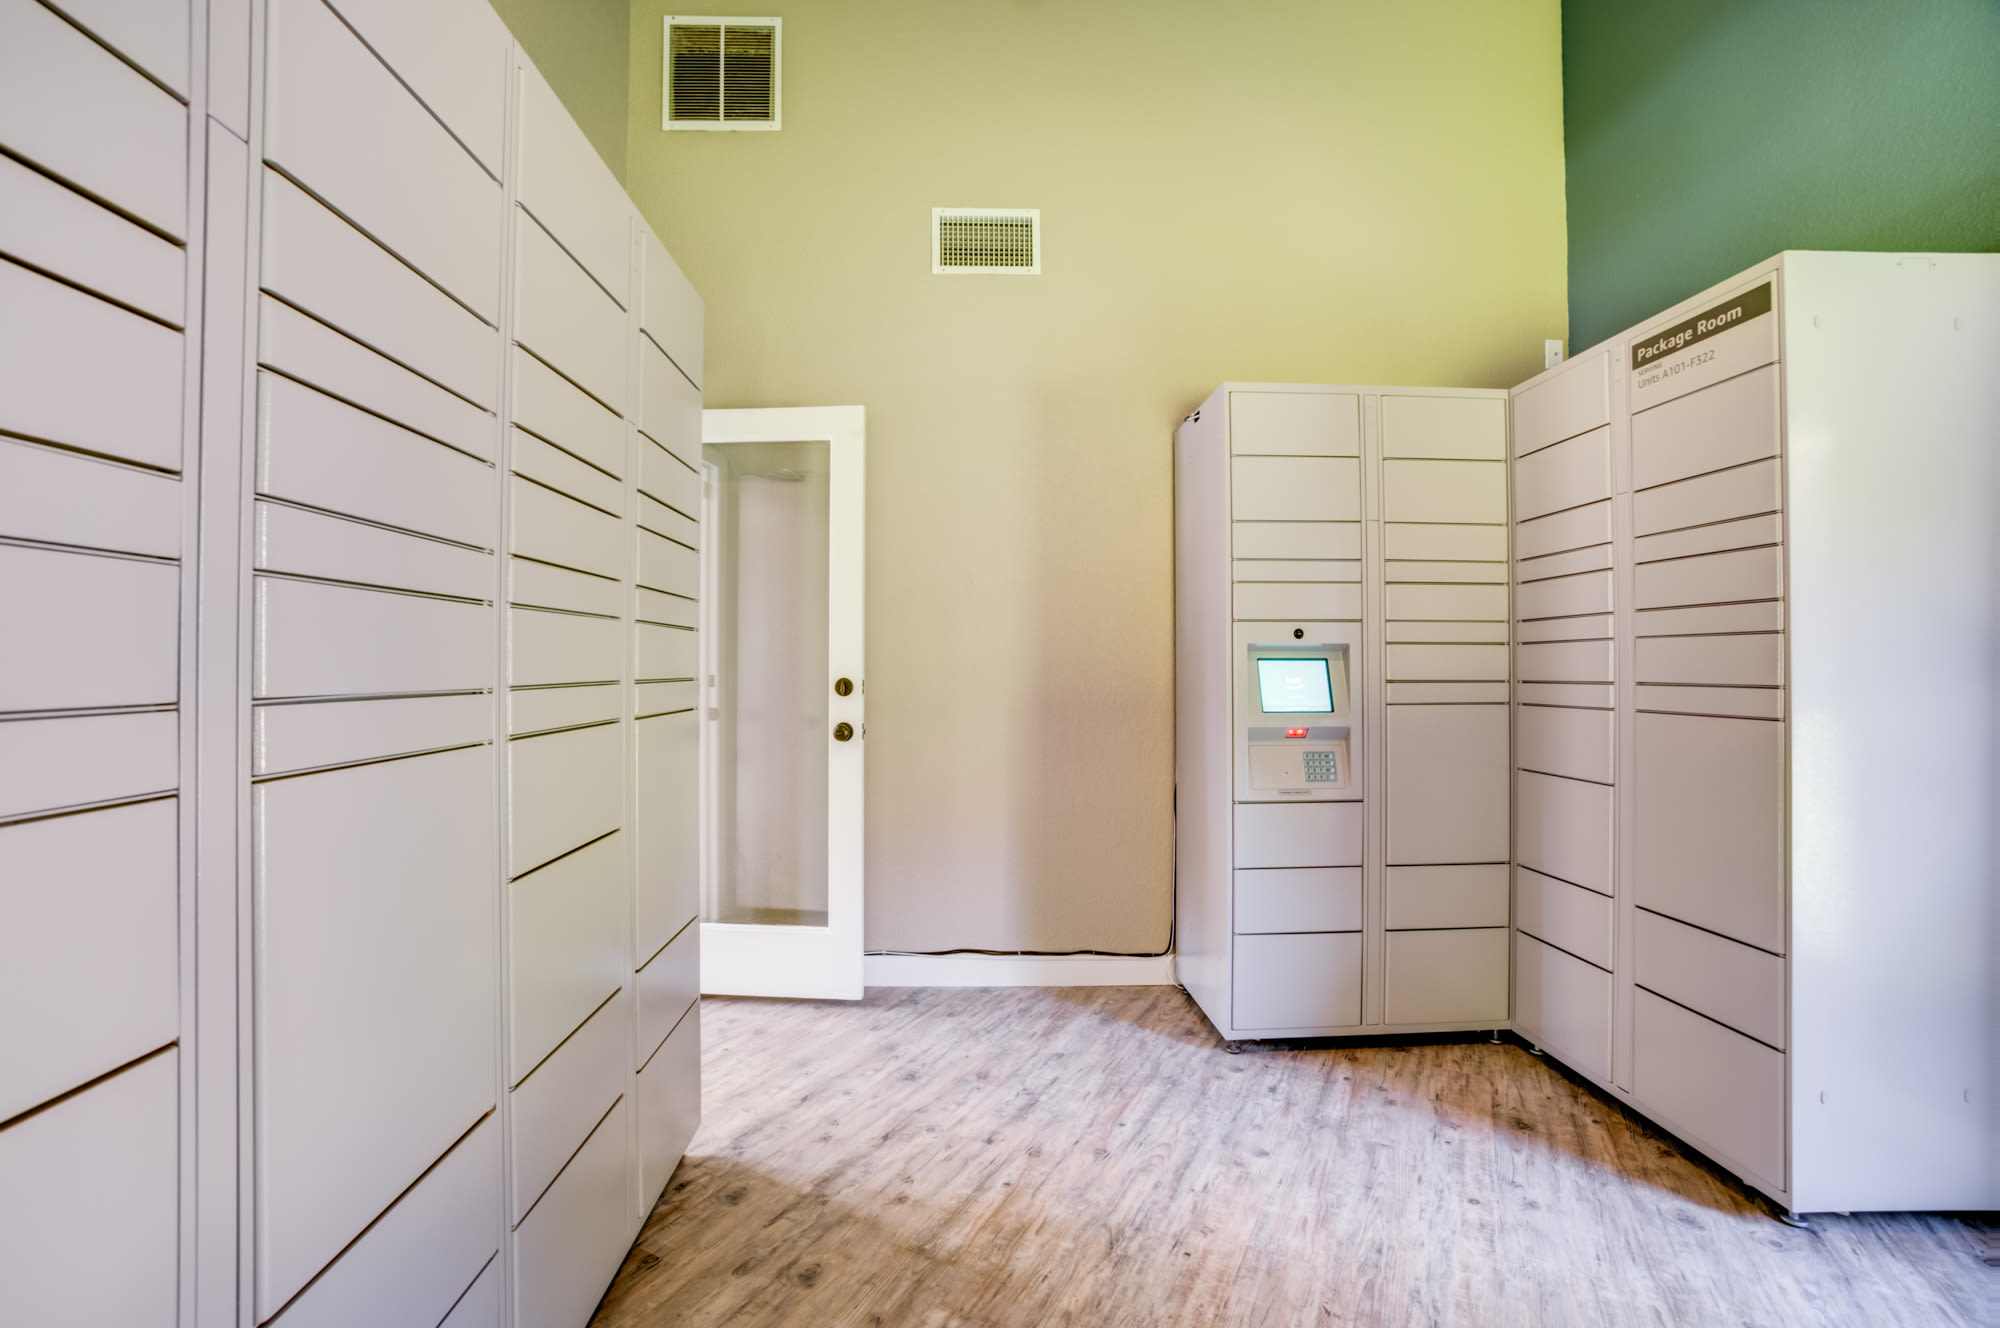 Package Room at Serramonte Ridge Apartment Homes in Daly City,CA